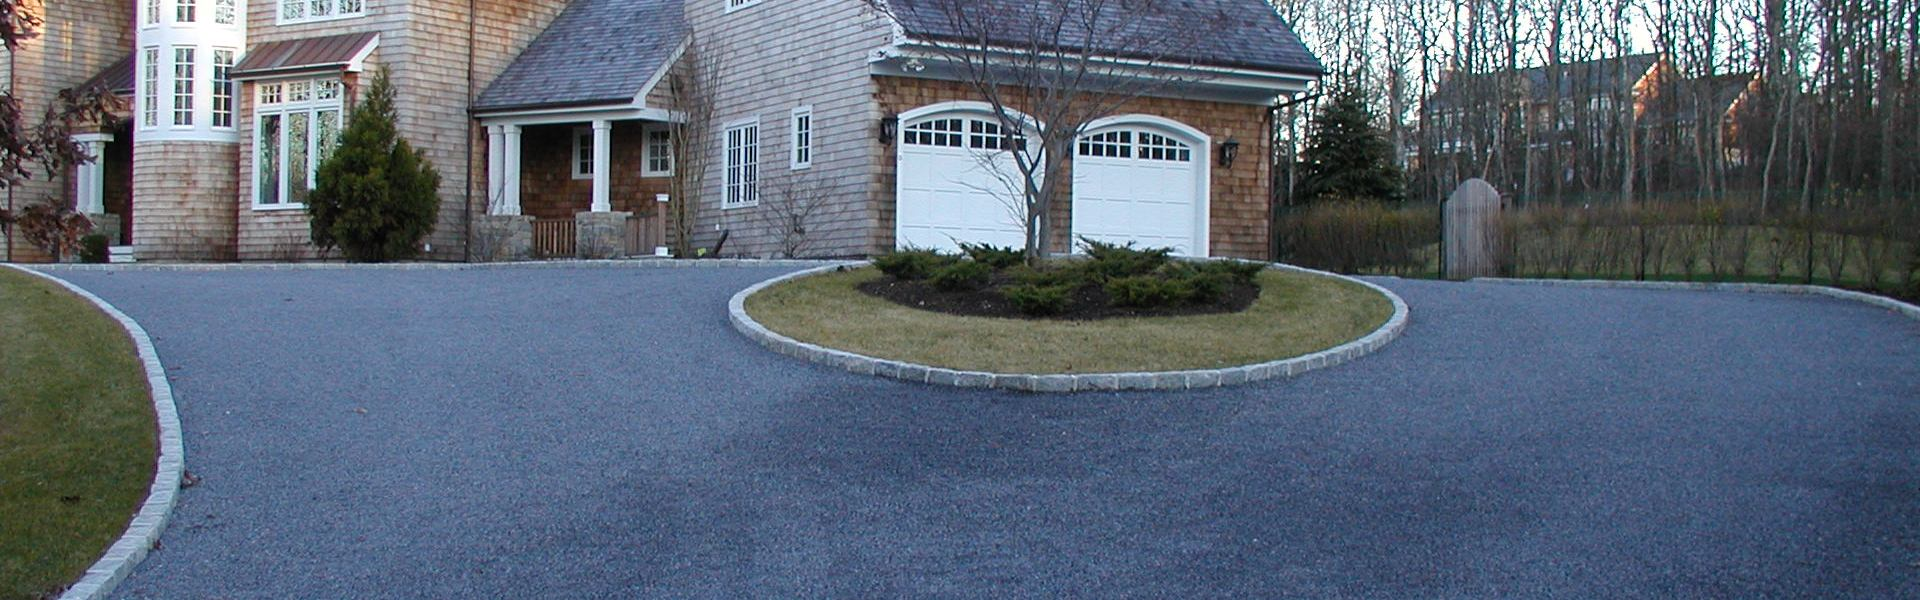 how to clean driveway stones